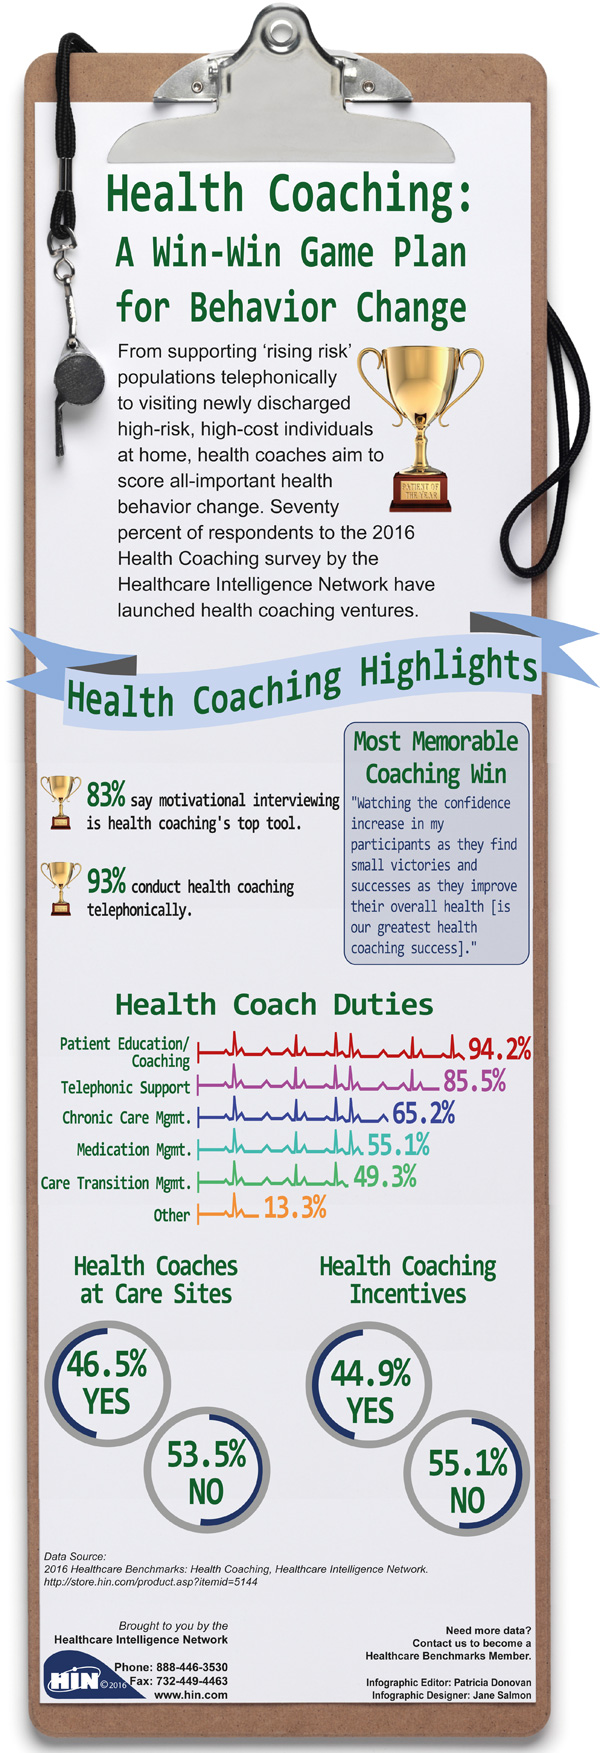 Health Coaching: A Win-Win Game Plan for Behavior Change